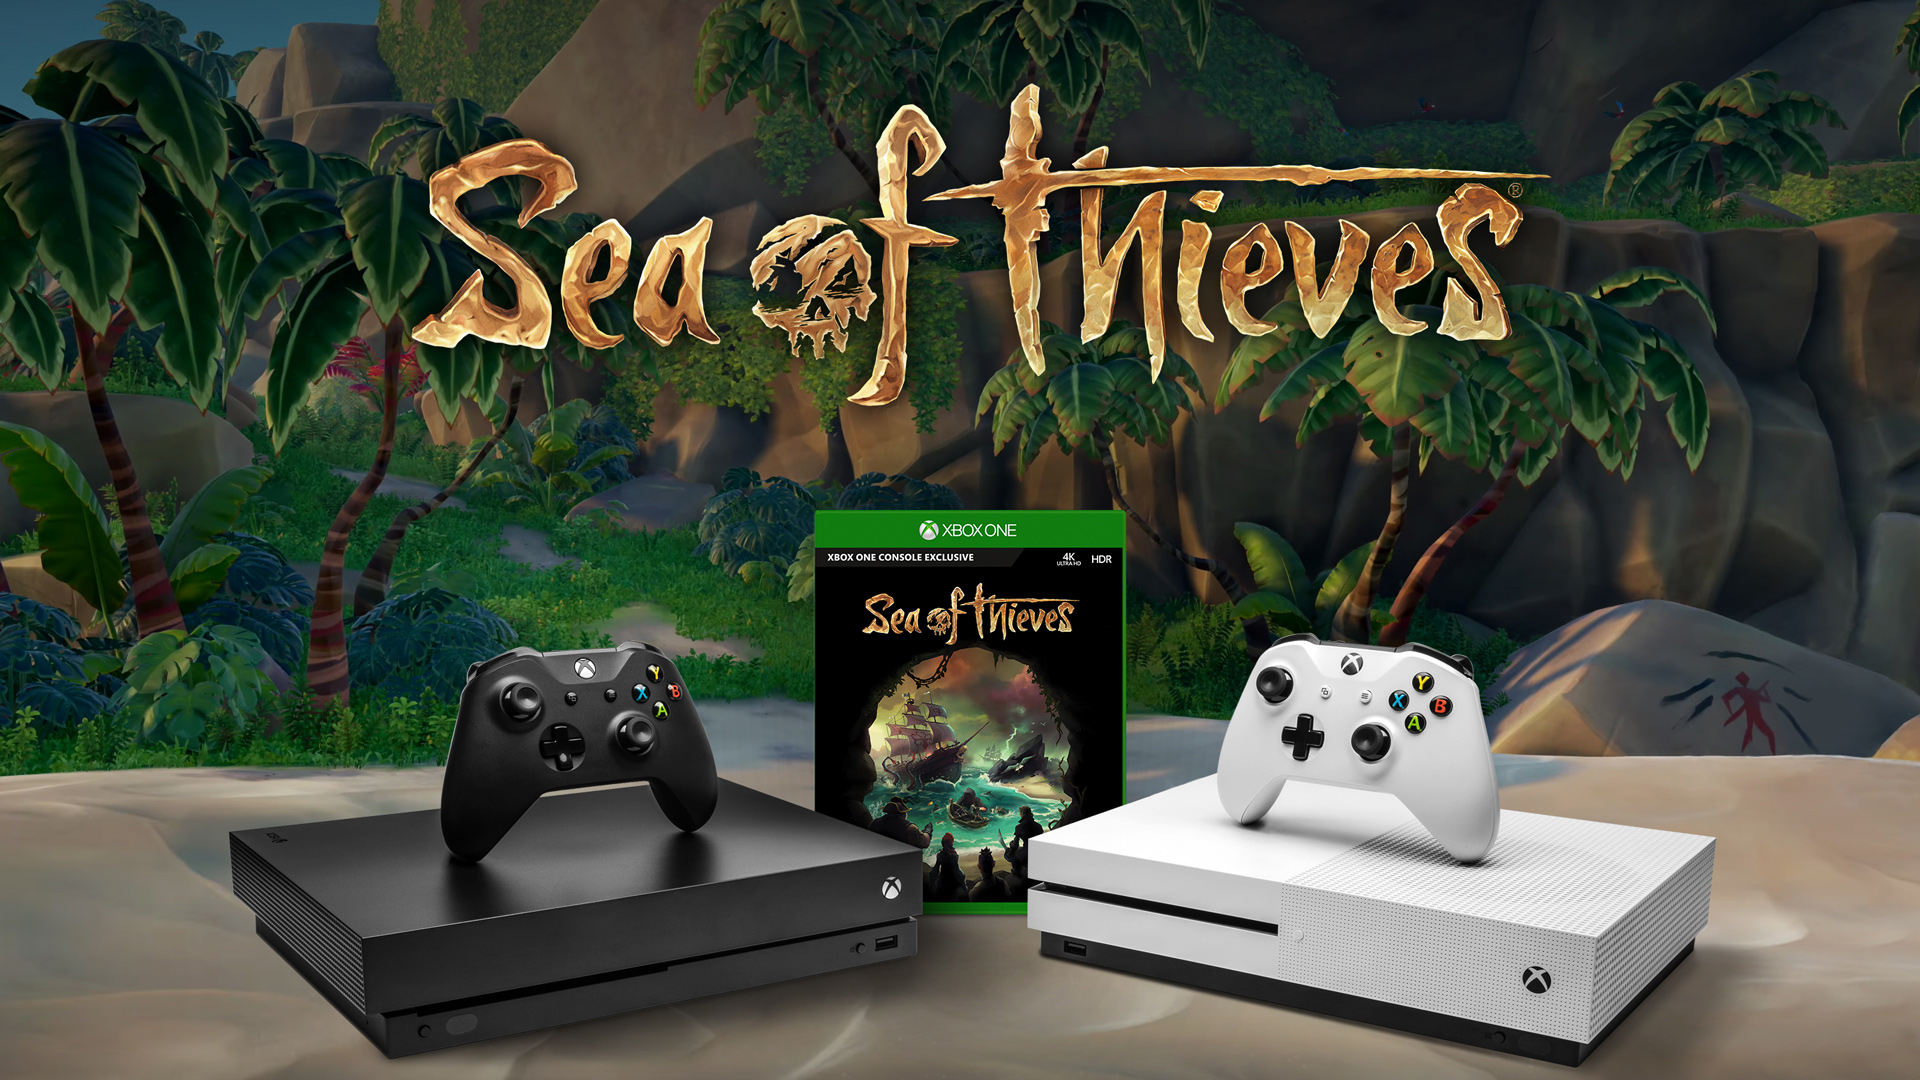 Xbox One X packing in Sea of Thieves for one week screenshot